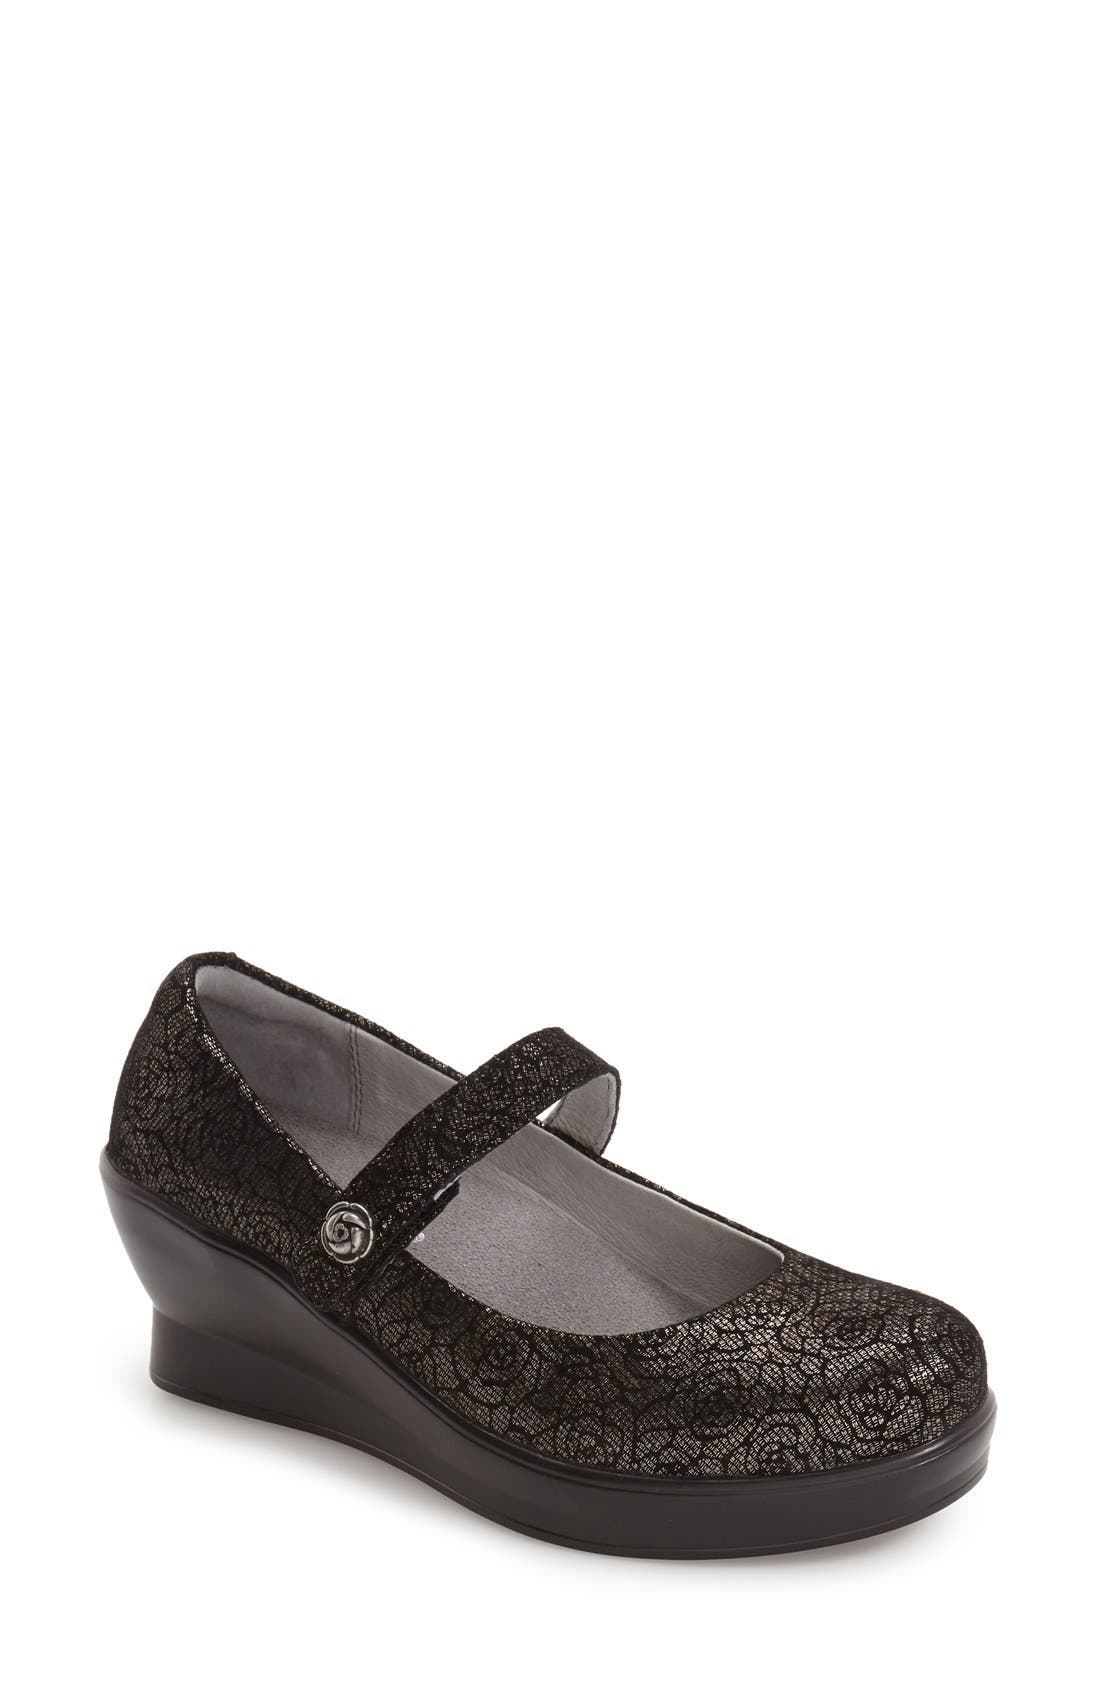 ALEGRIA 'Flare' Mary Jane Wedge